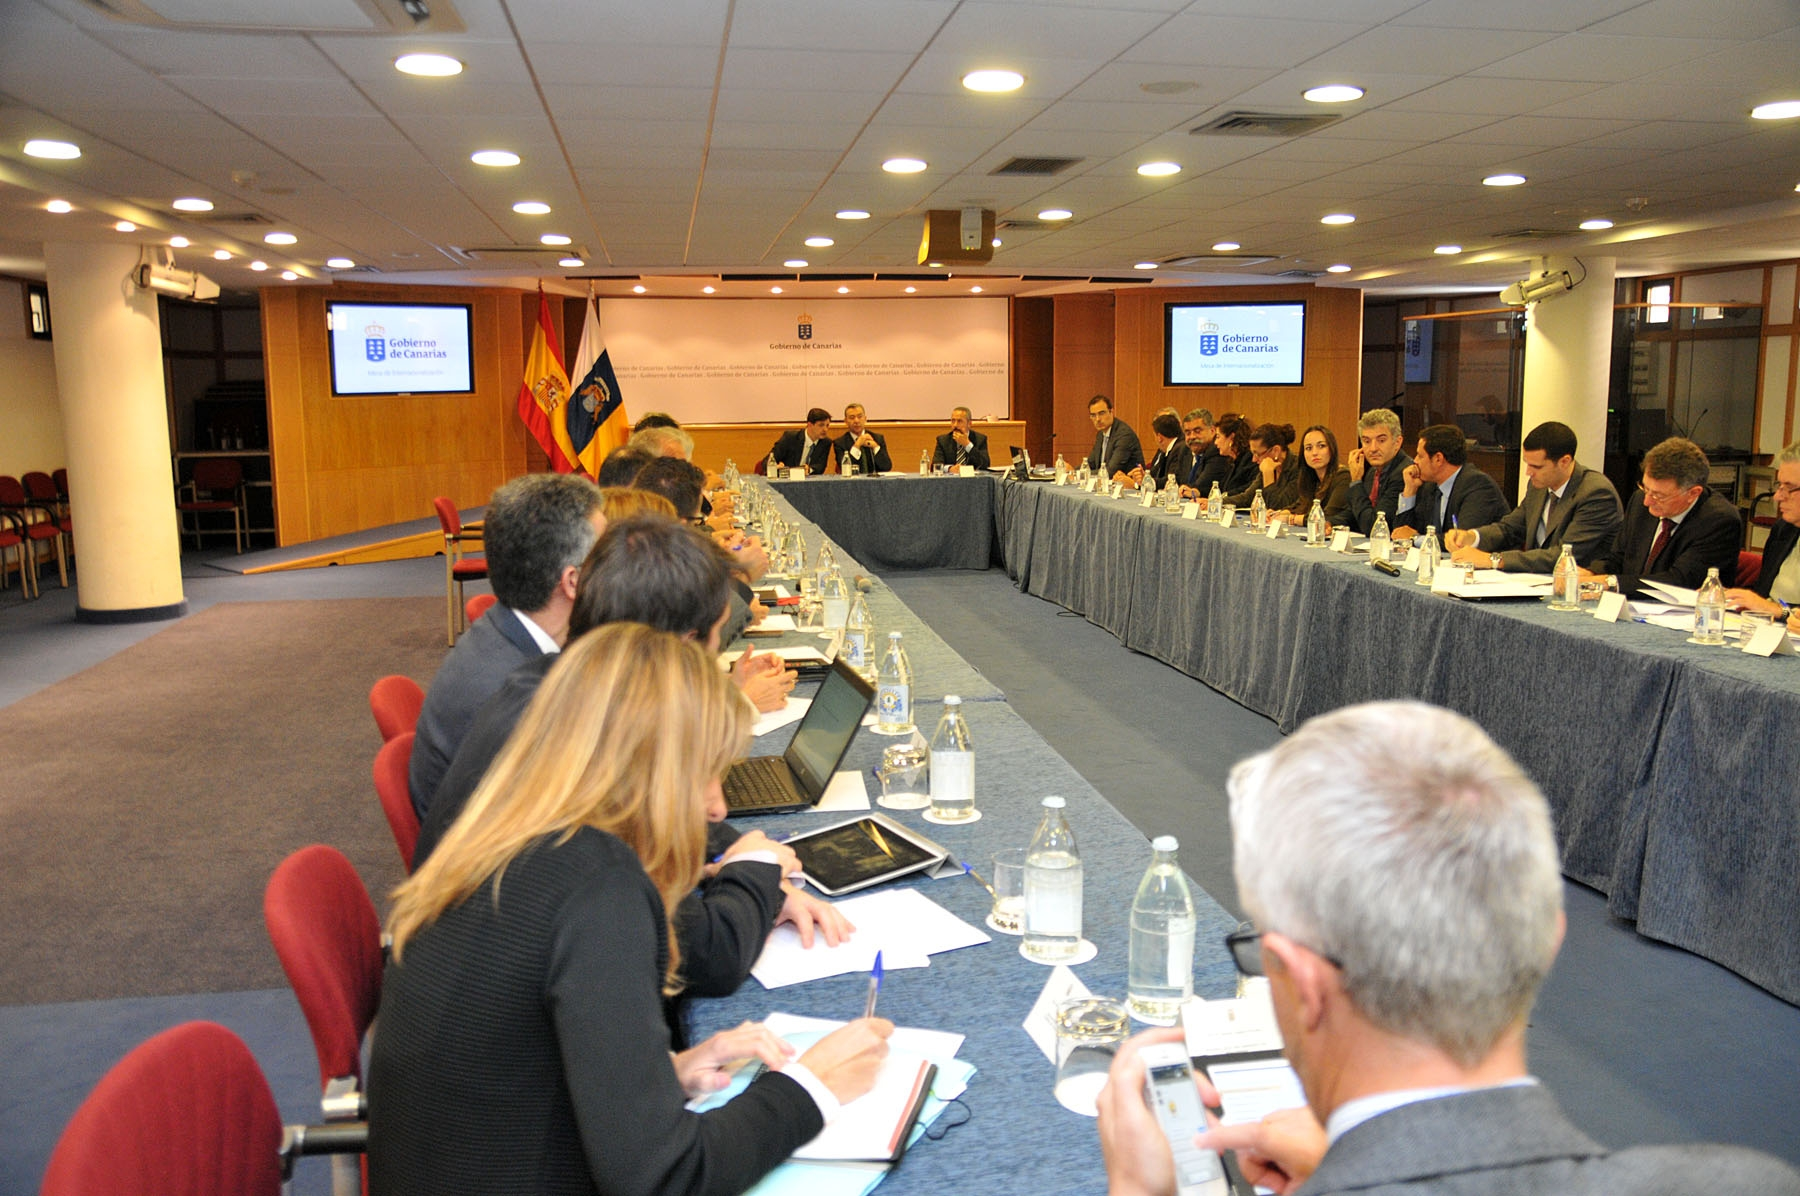 More than fifty Spanish companies have registered to find out in detail at B2B meetings